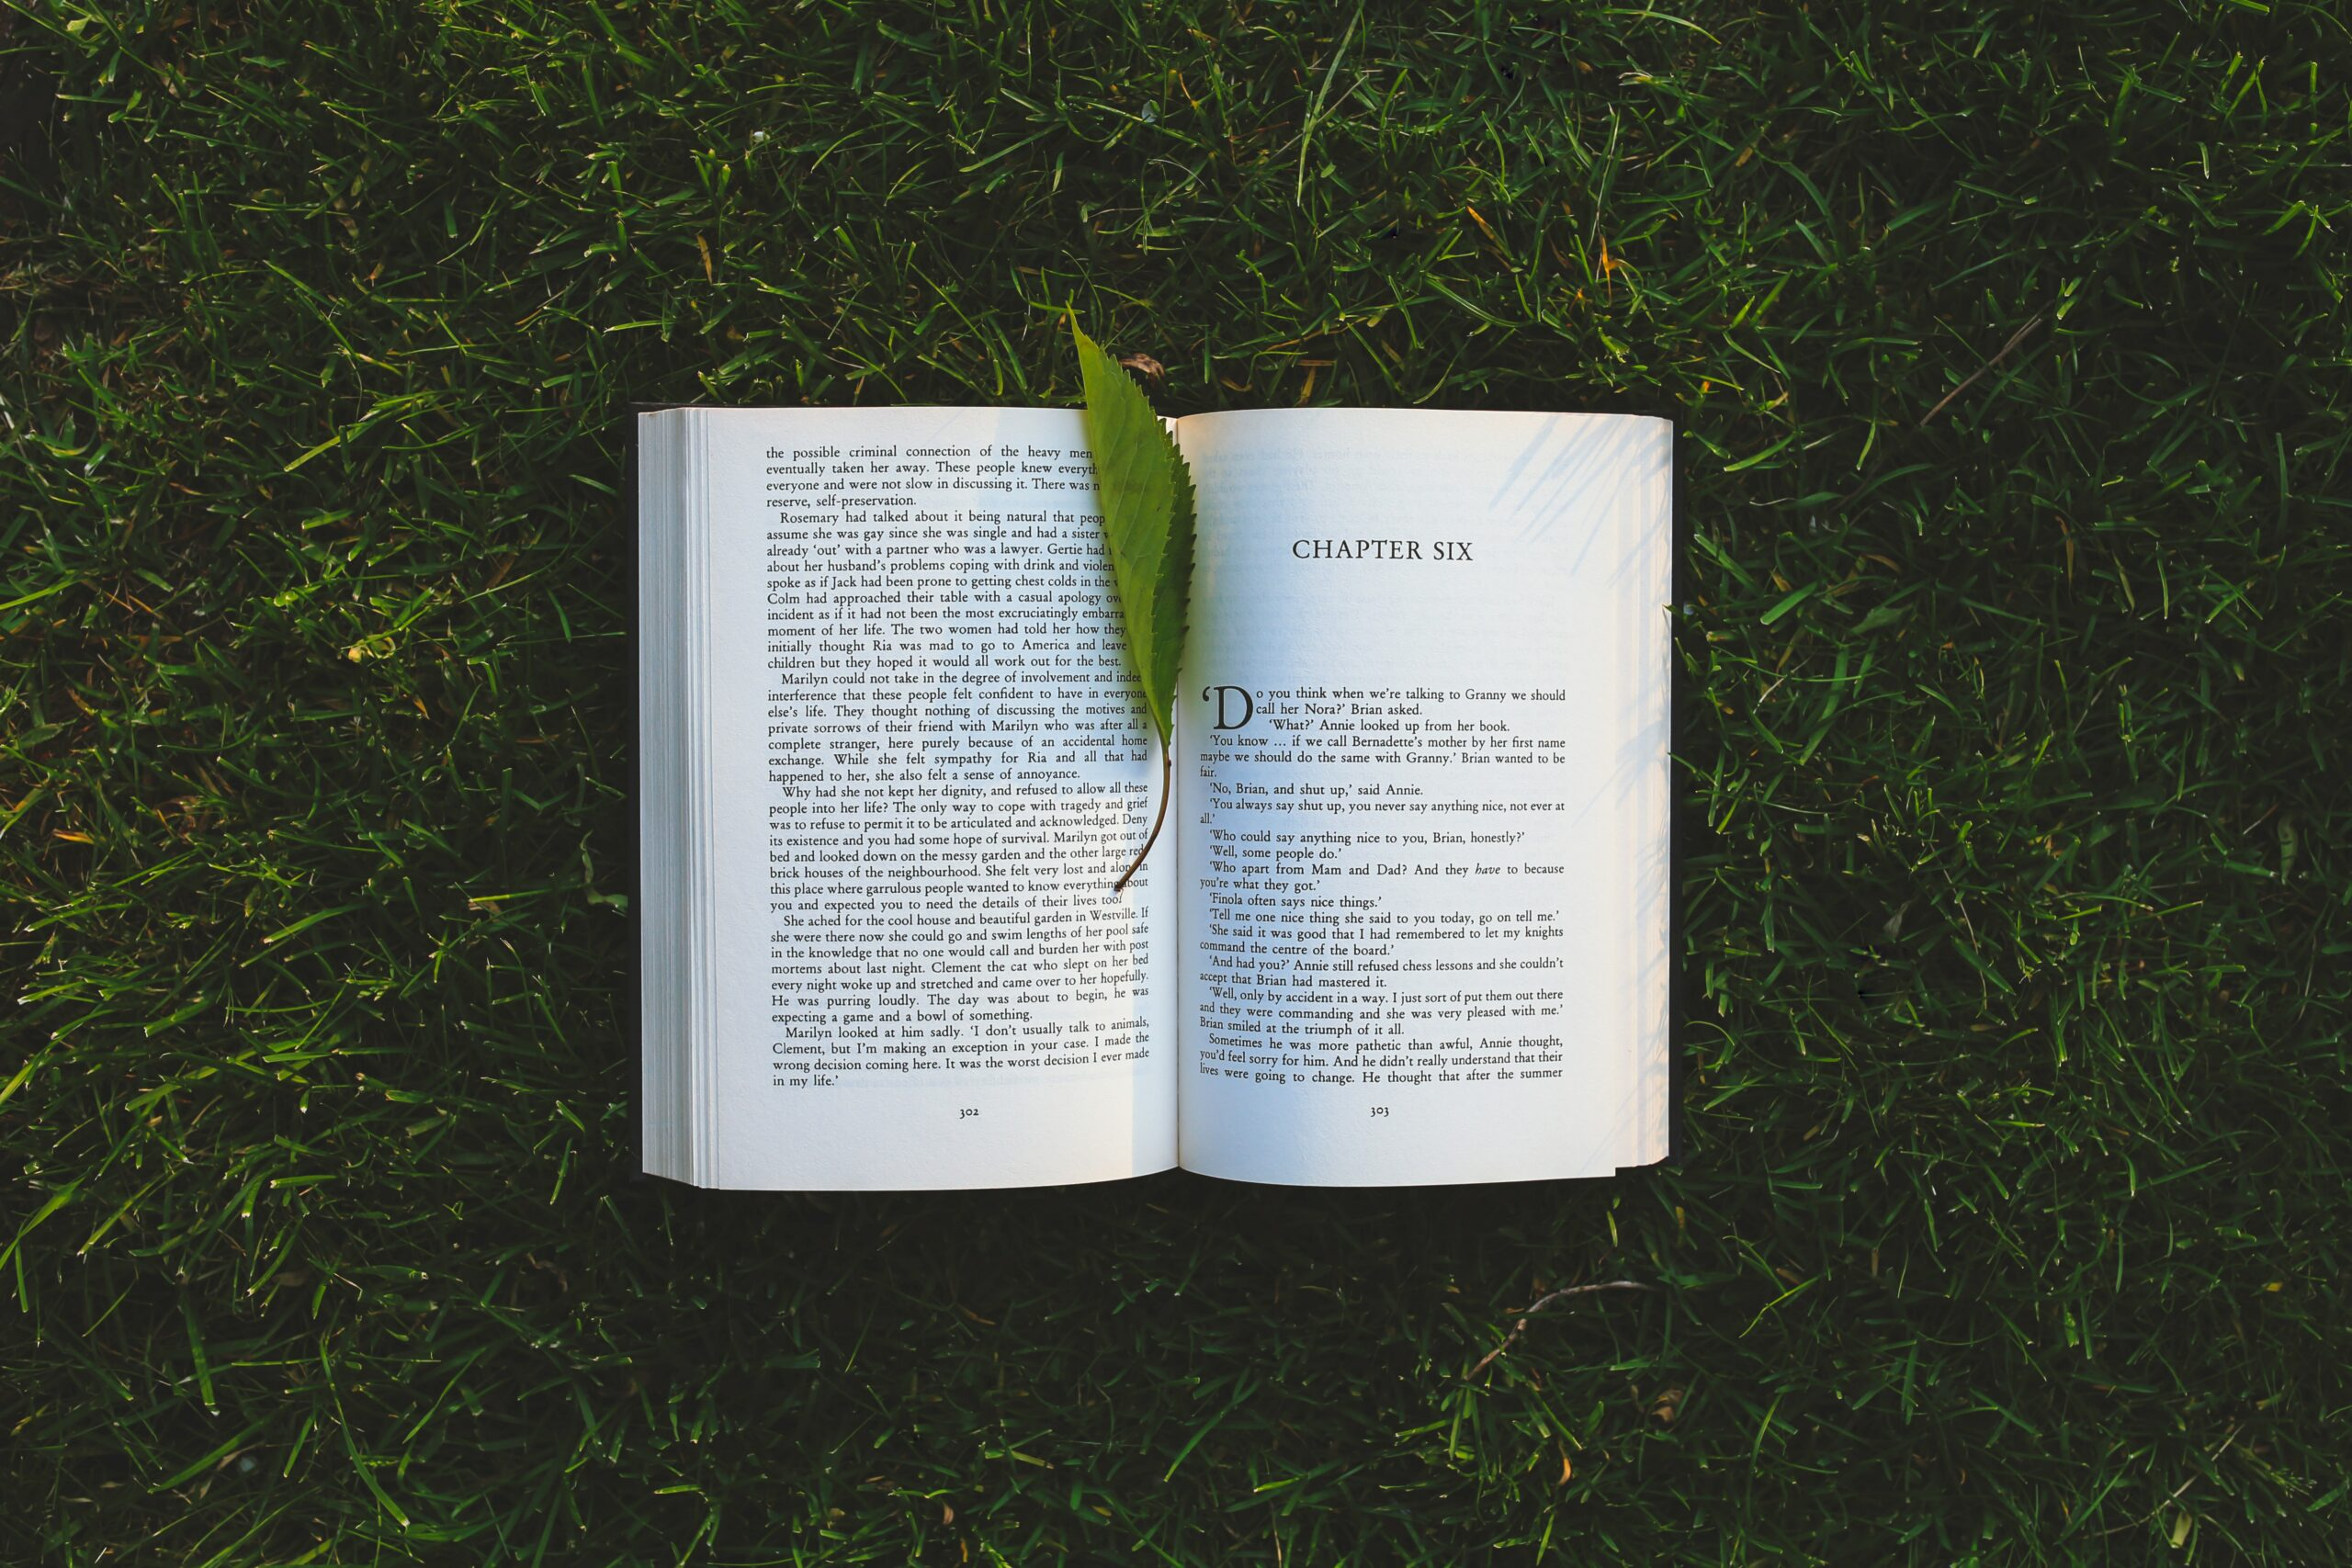 "A book in the grass opened to ""chapter six"" with a leaf bookmark"